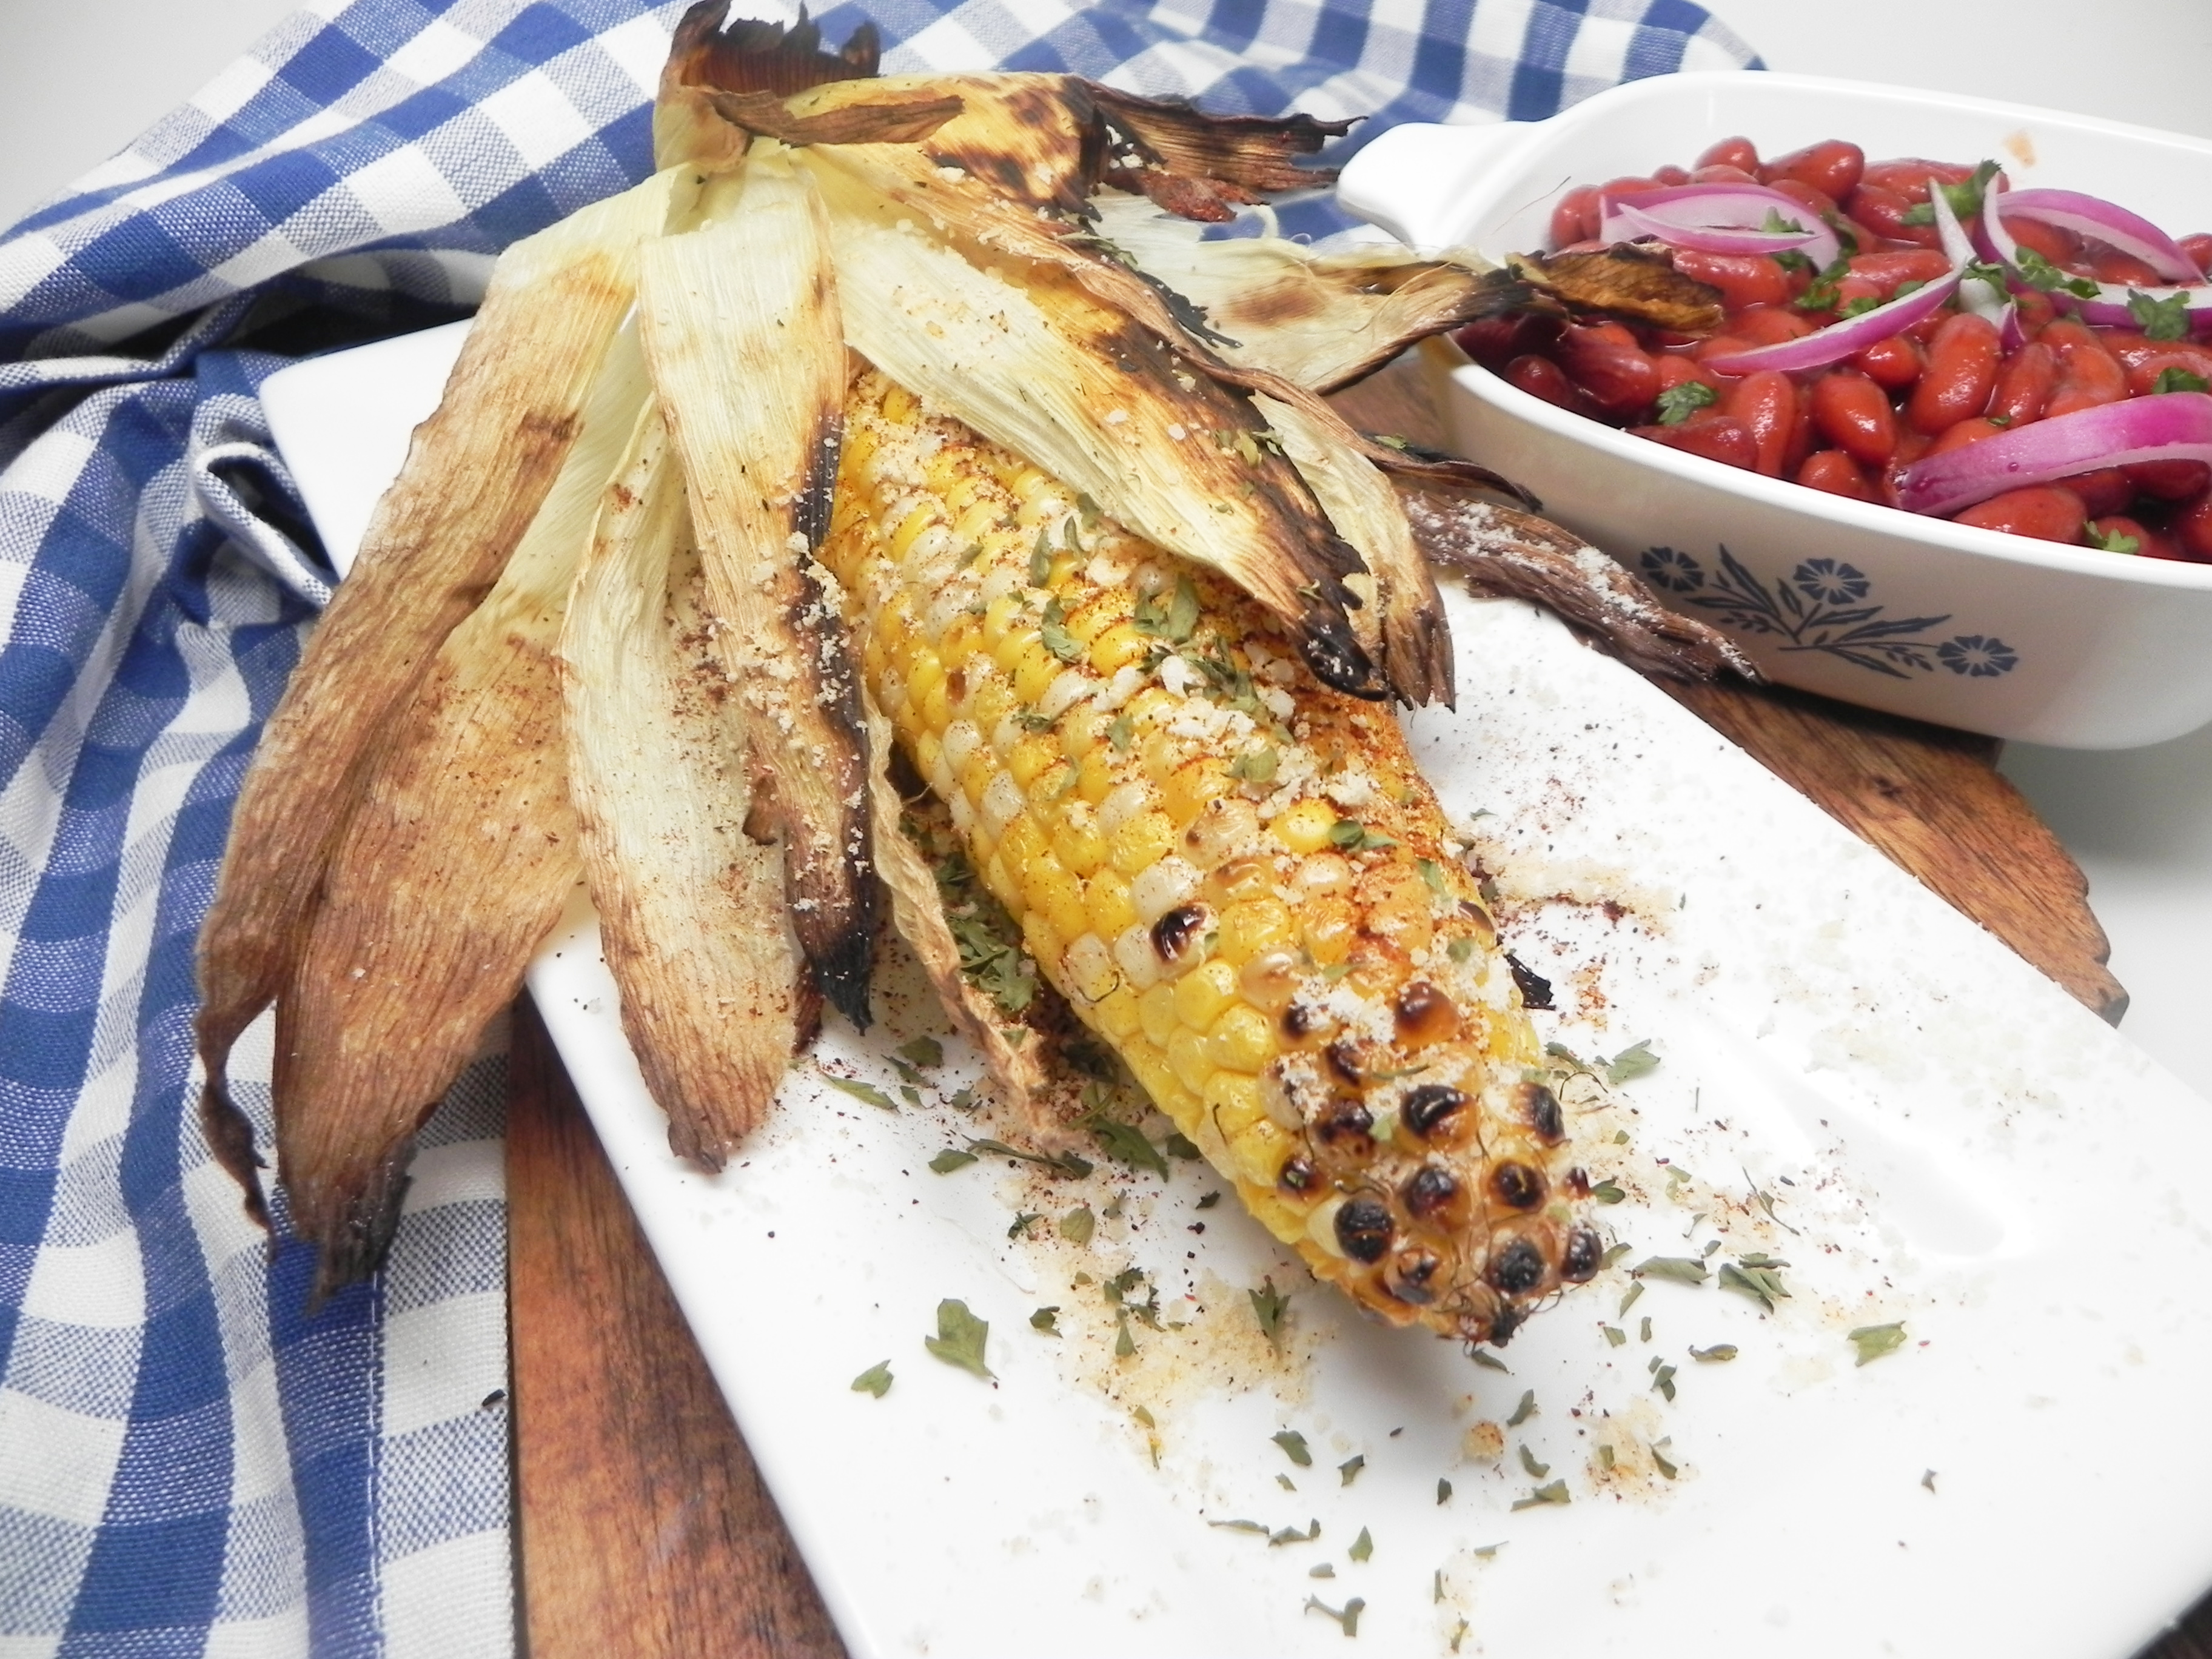 Mexican Roasted Street Corn on the Cob Michael B